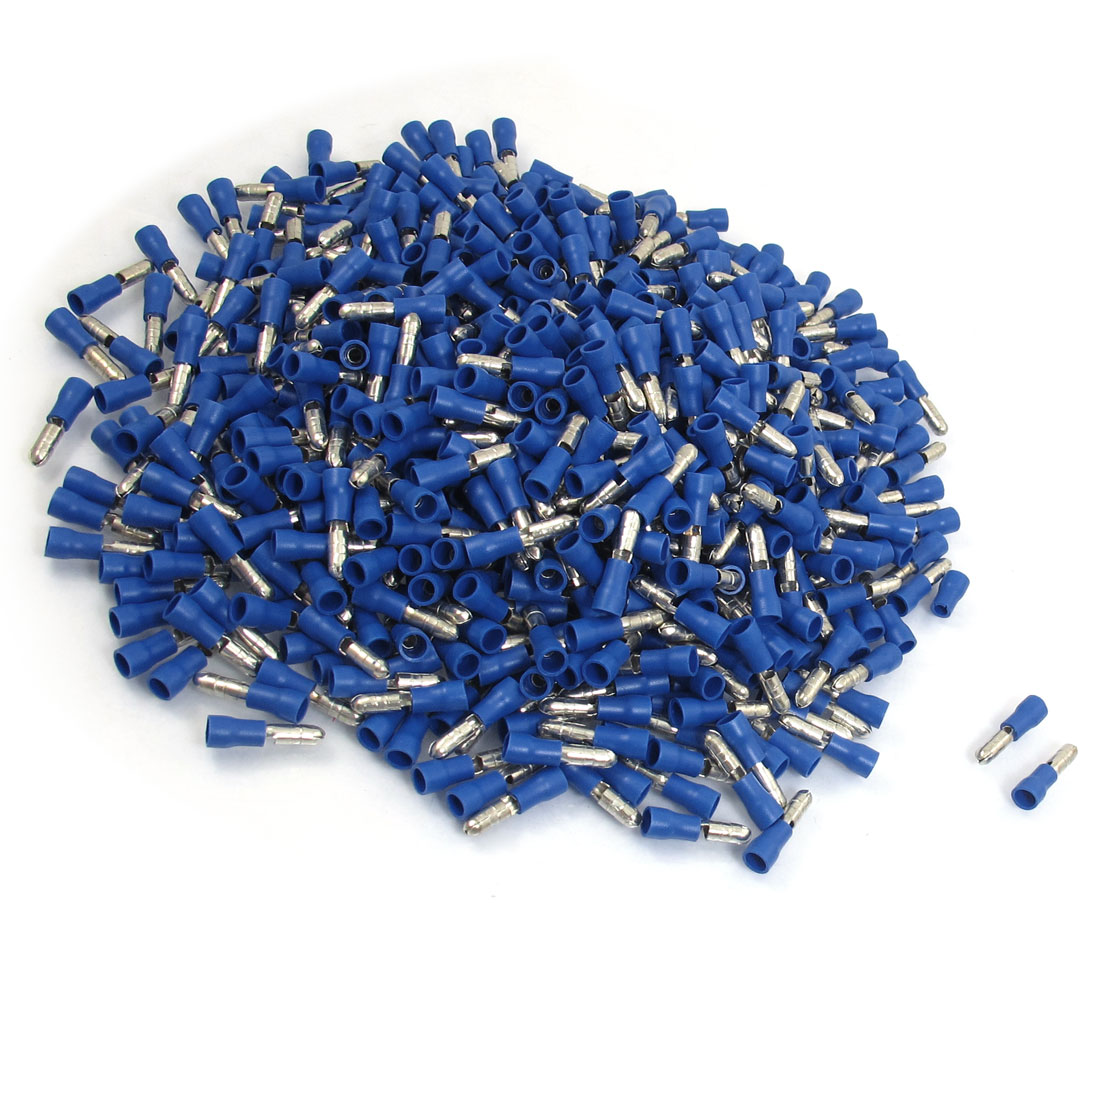 1000-Pcs-16-14-AWG-Insulated-Crimp-Terminals-Connector-MPD2-156